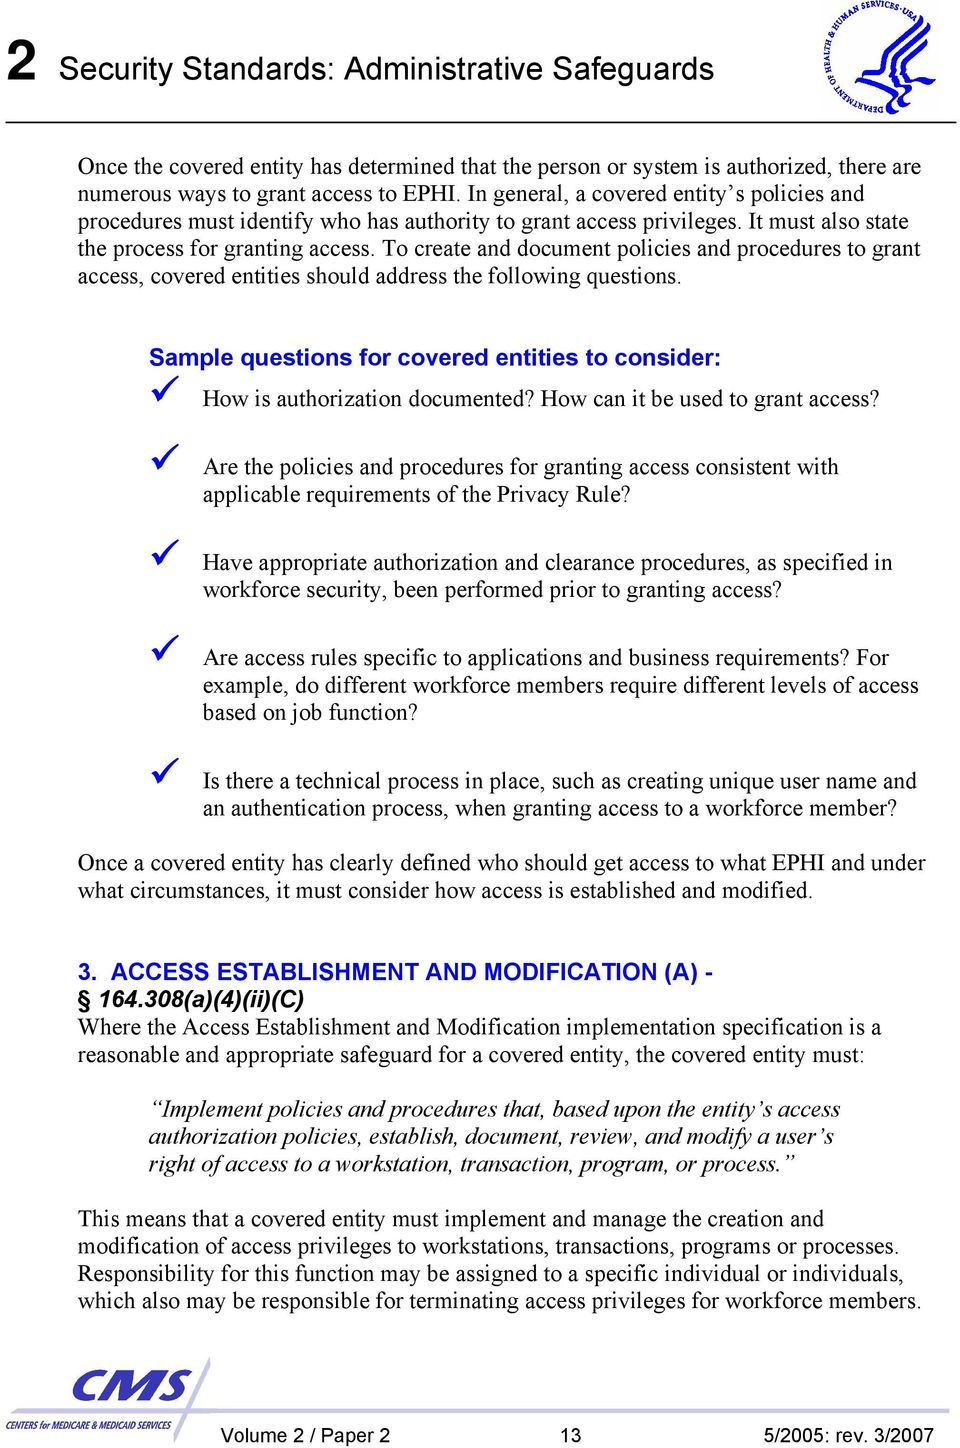 To create and document policies and procedures to grant access, covered entities should address the following questions. How is authorization documented? How can it be used to grant access?